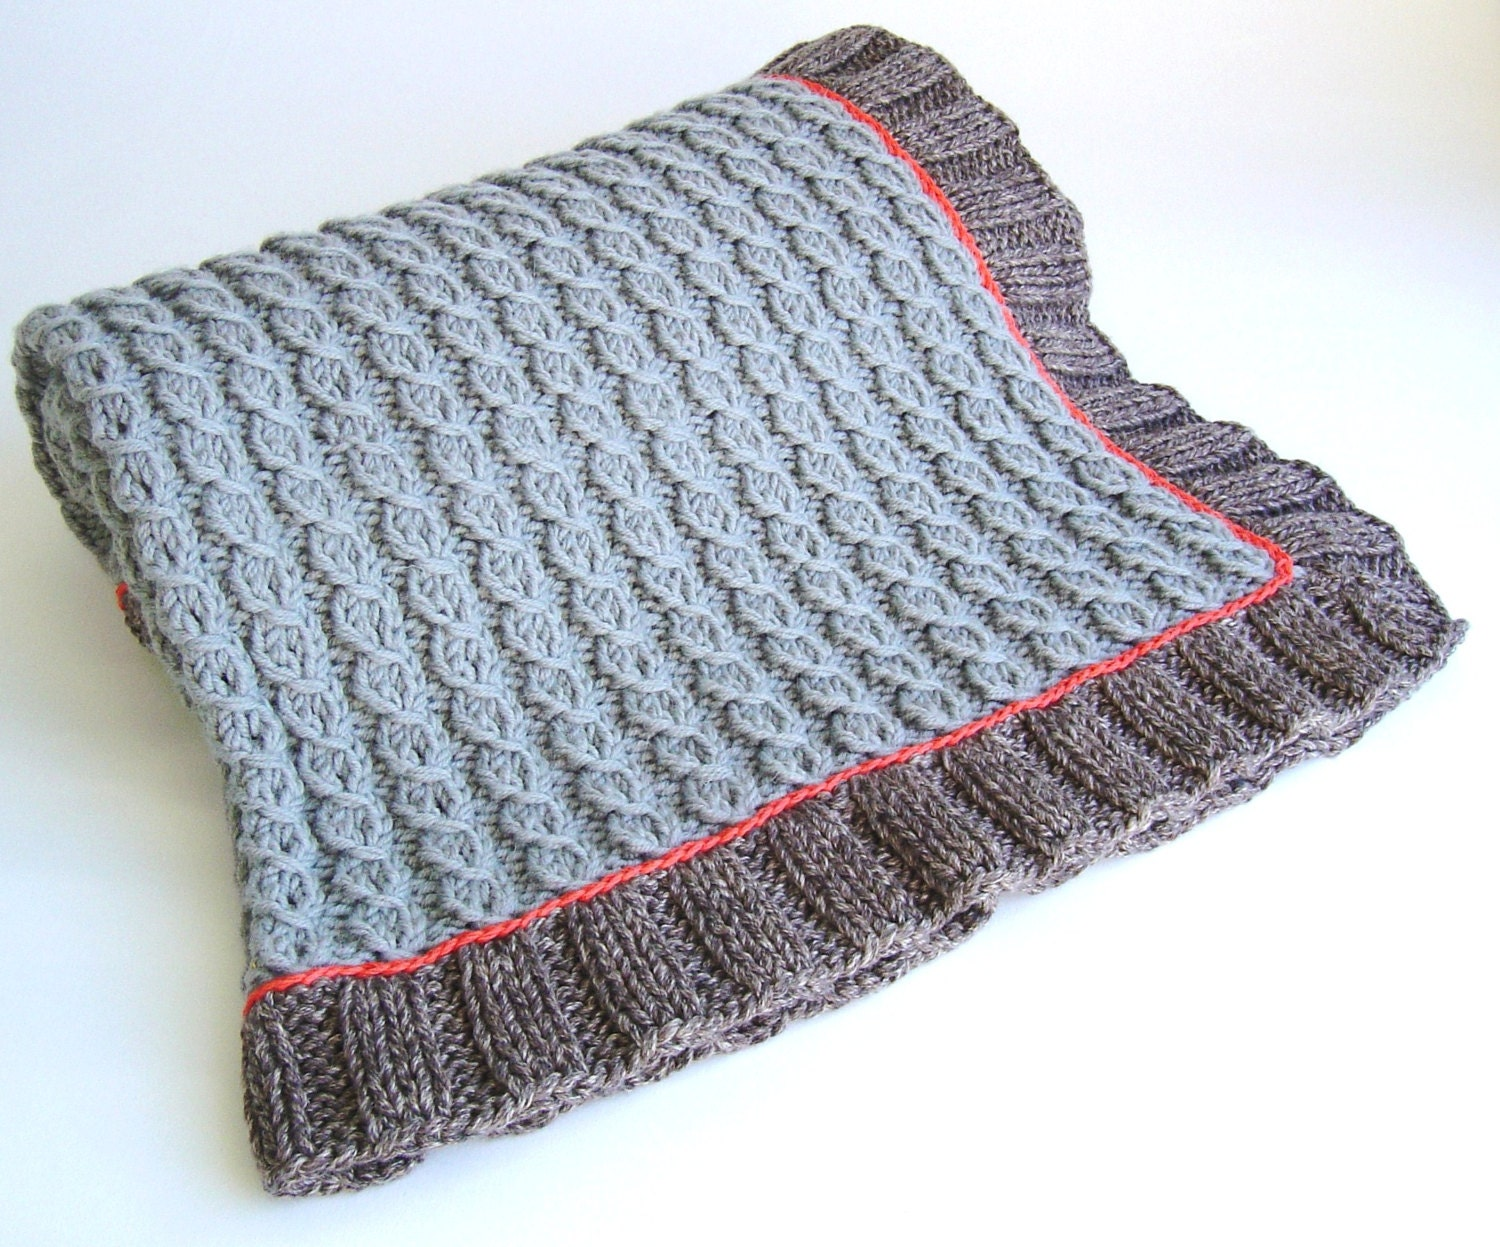 Knitting PATTERN Mock Cable Baby Blanket Easy Knit Lap ...